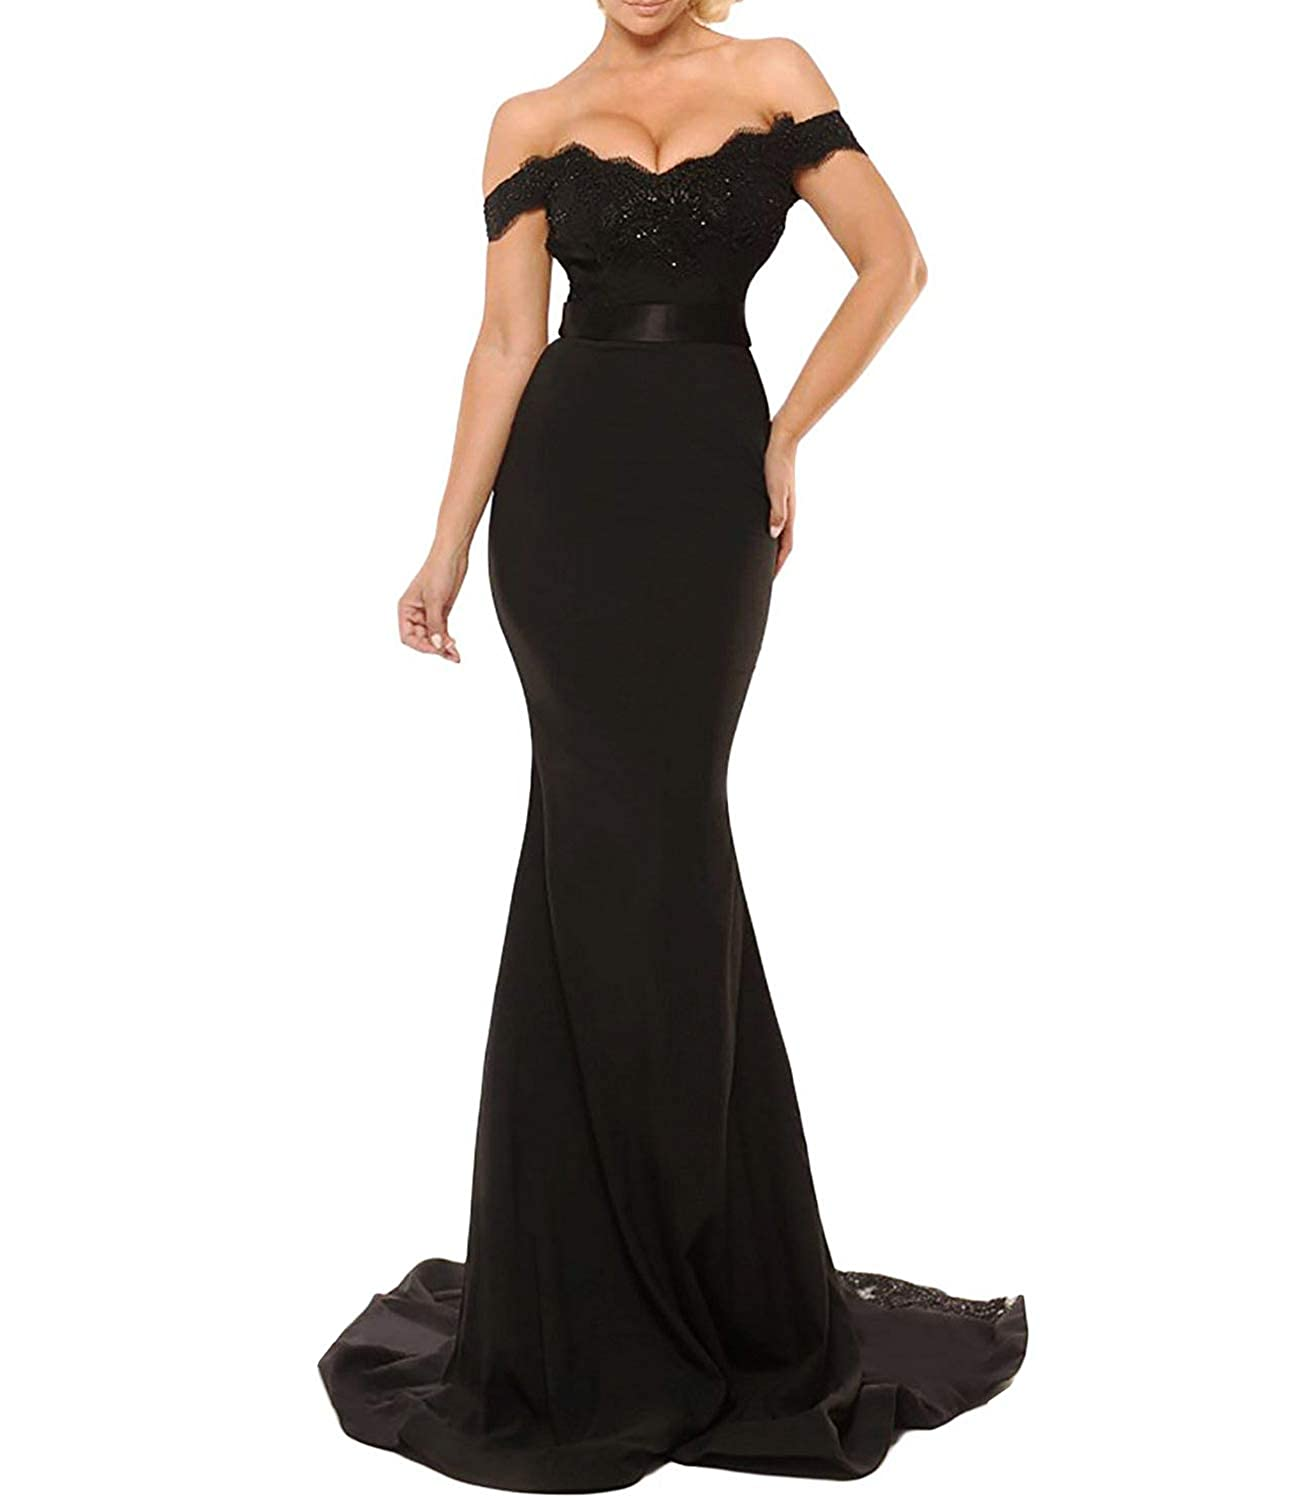 fa3a7ac7ab02 Women s Off The Shoulder Lace Mermaid Prom Party Gowns Bridesmaid Evening  Dresses at Amazon Women s Clothing store